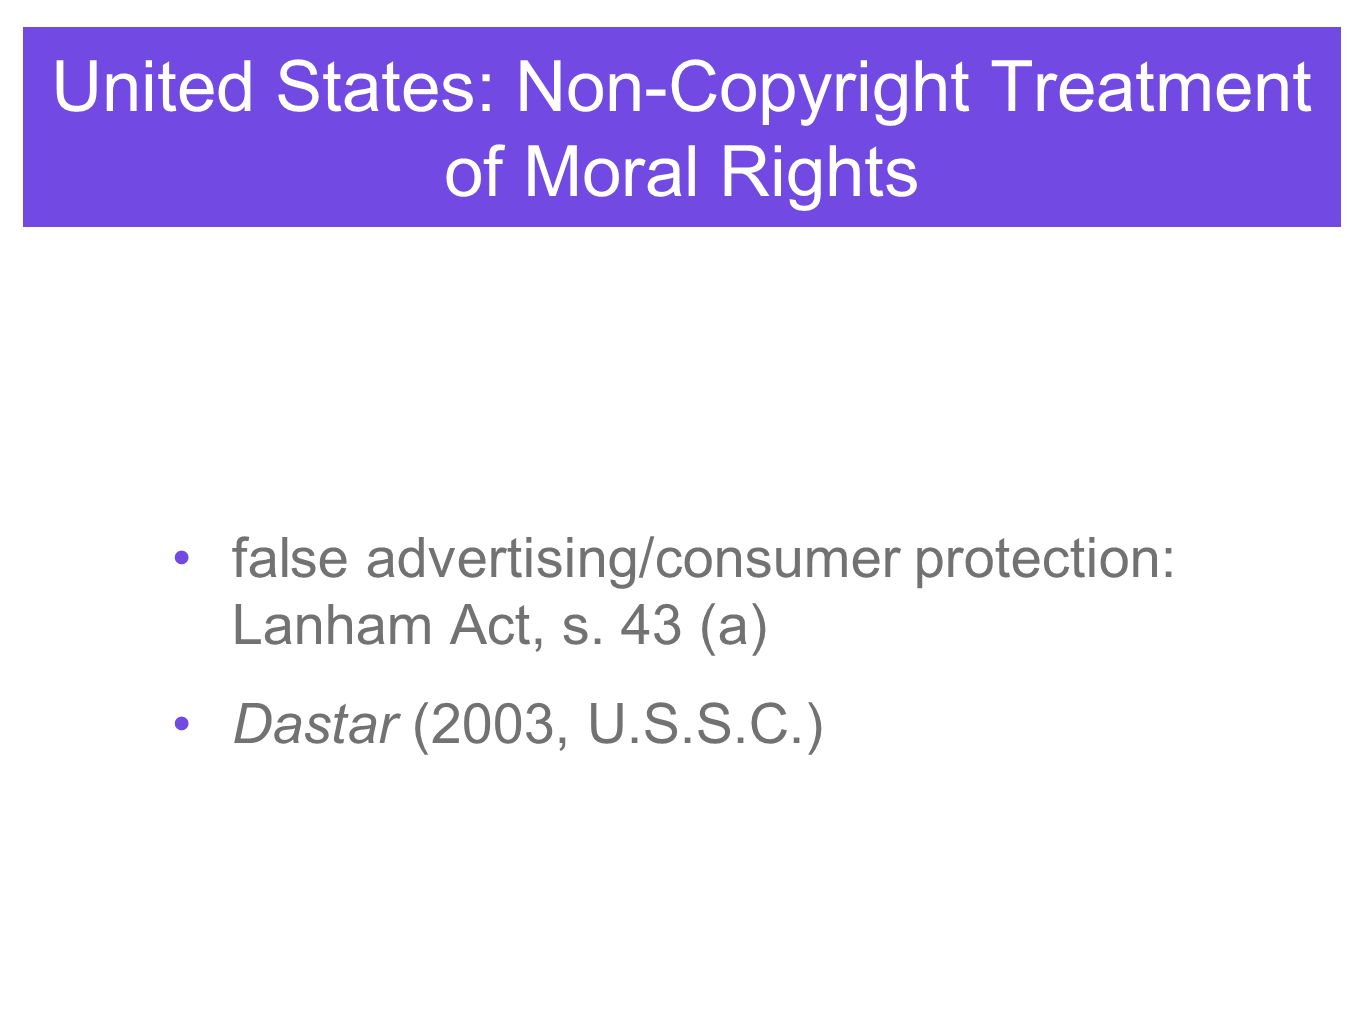 United States: Non-Copyright Treatment of Moral Rights